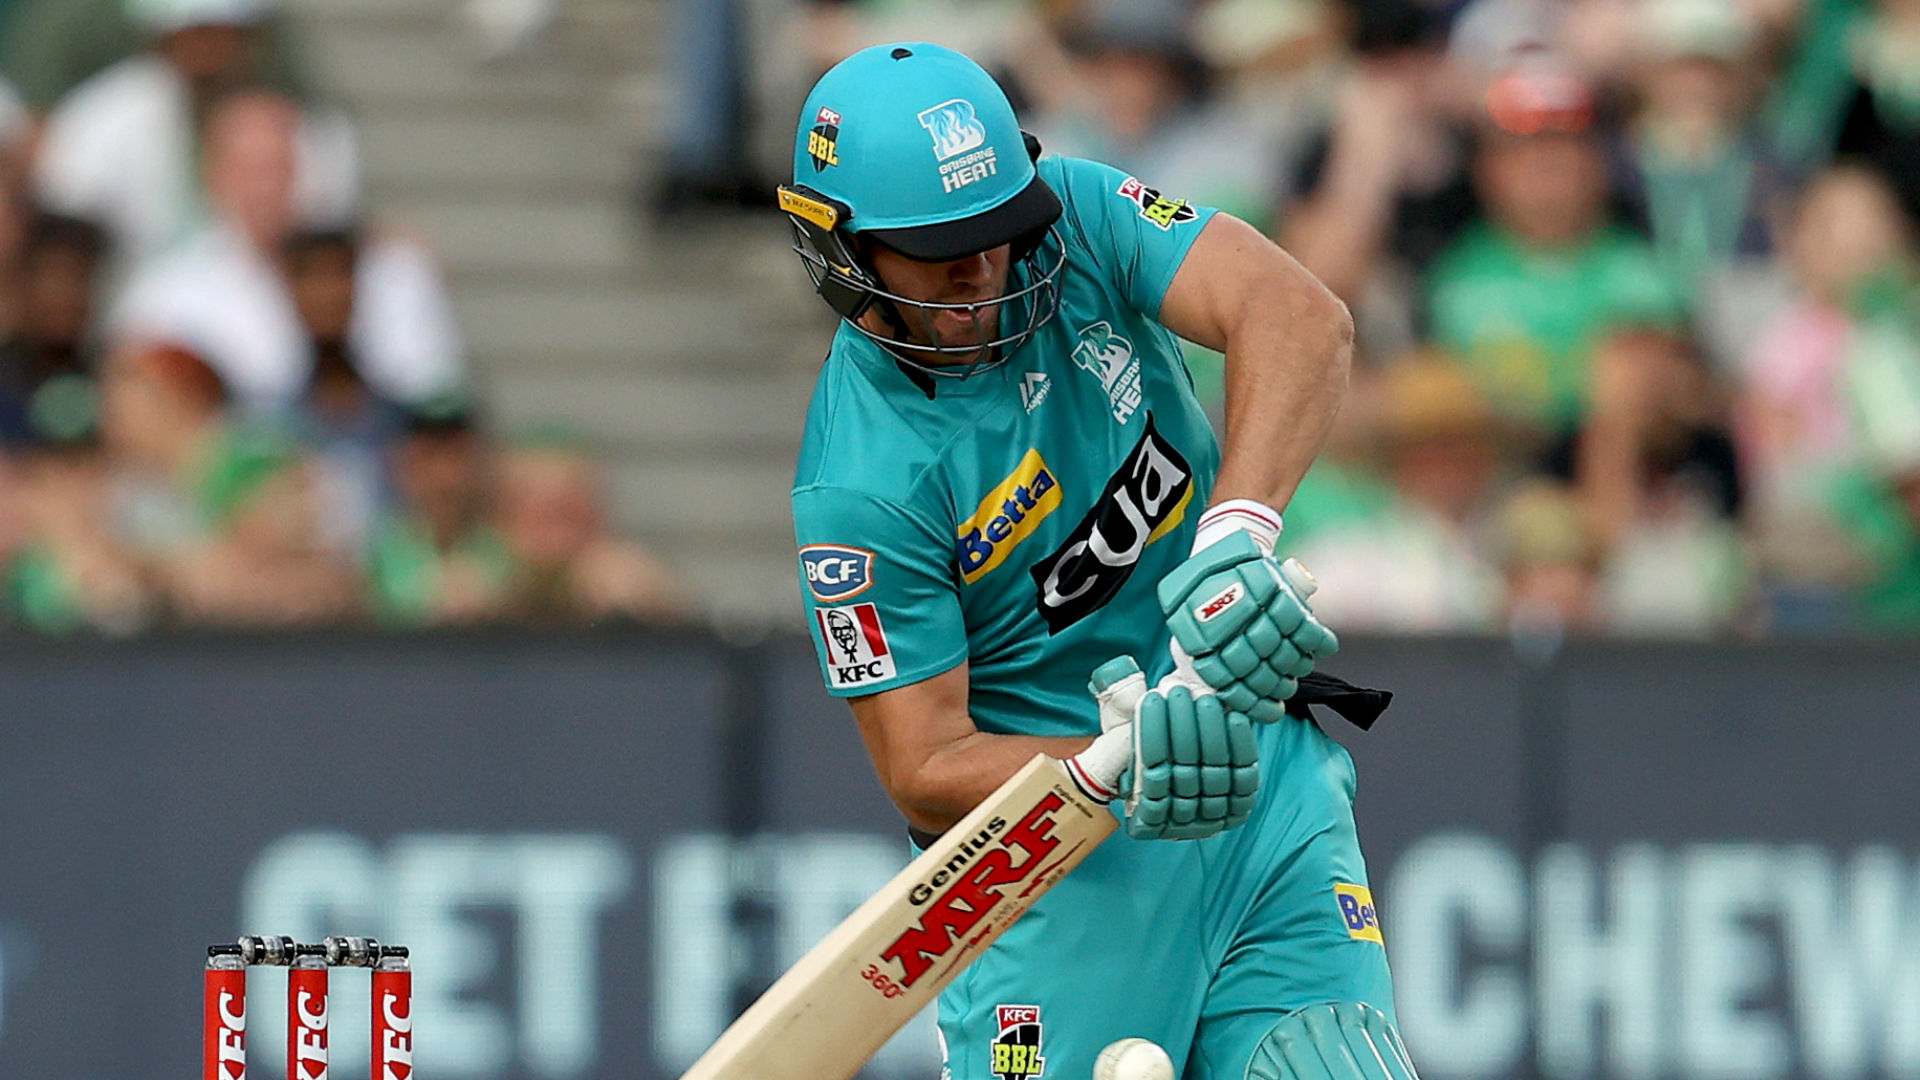 De Villiers: I've been asked to lead Proteas